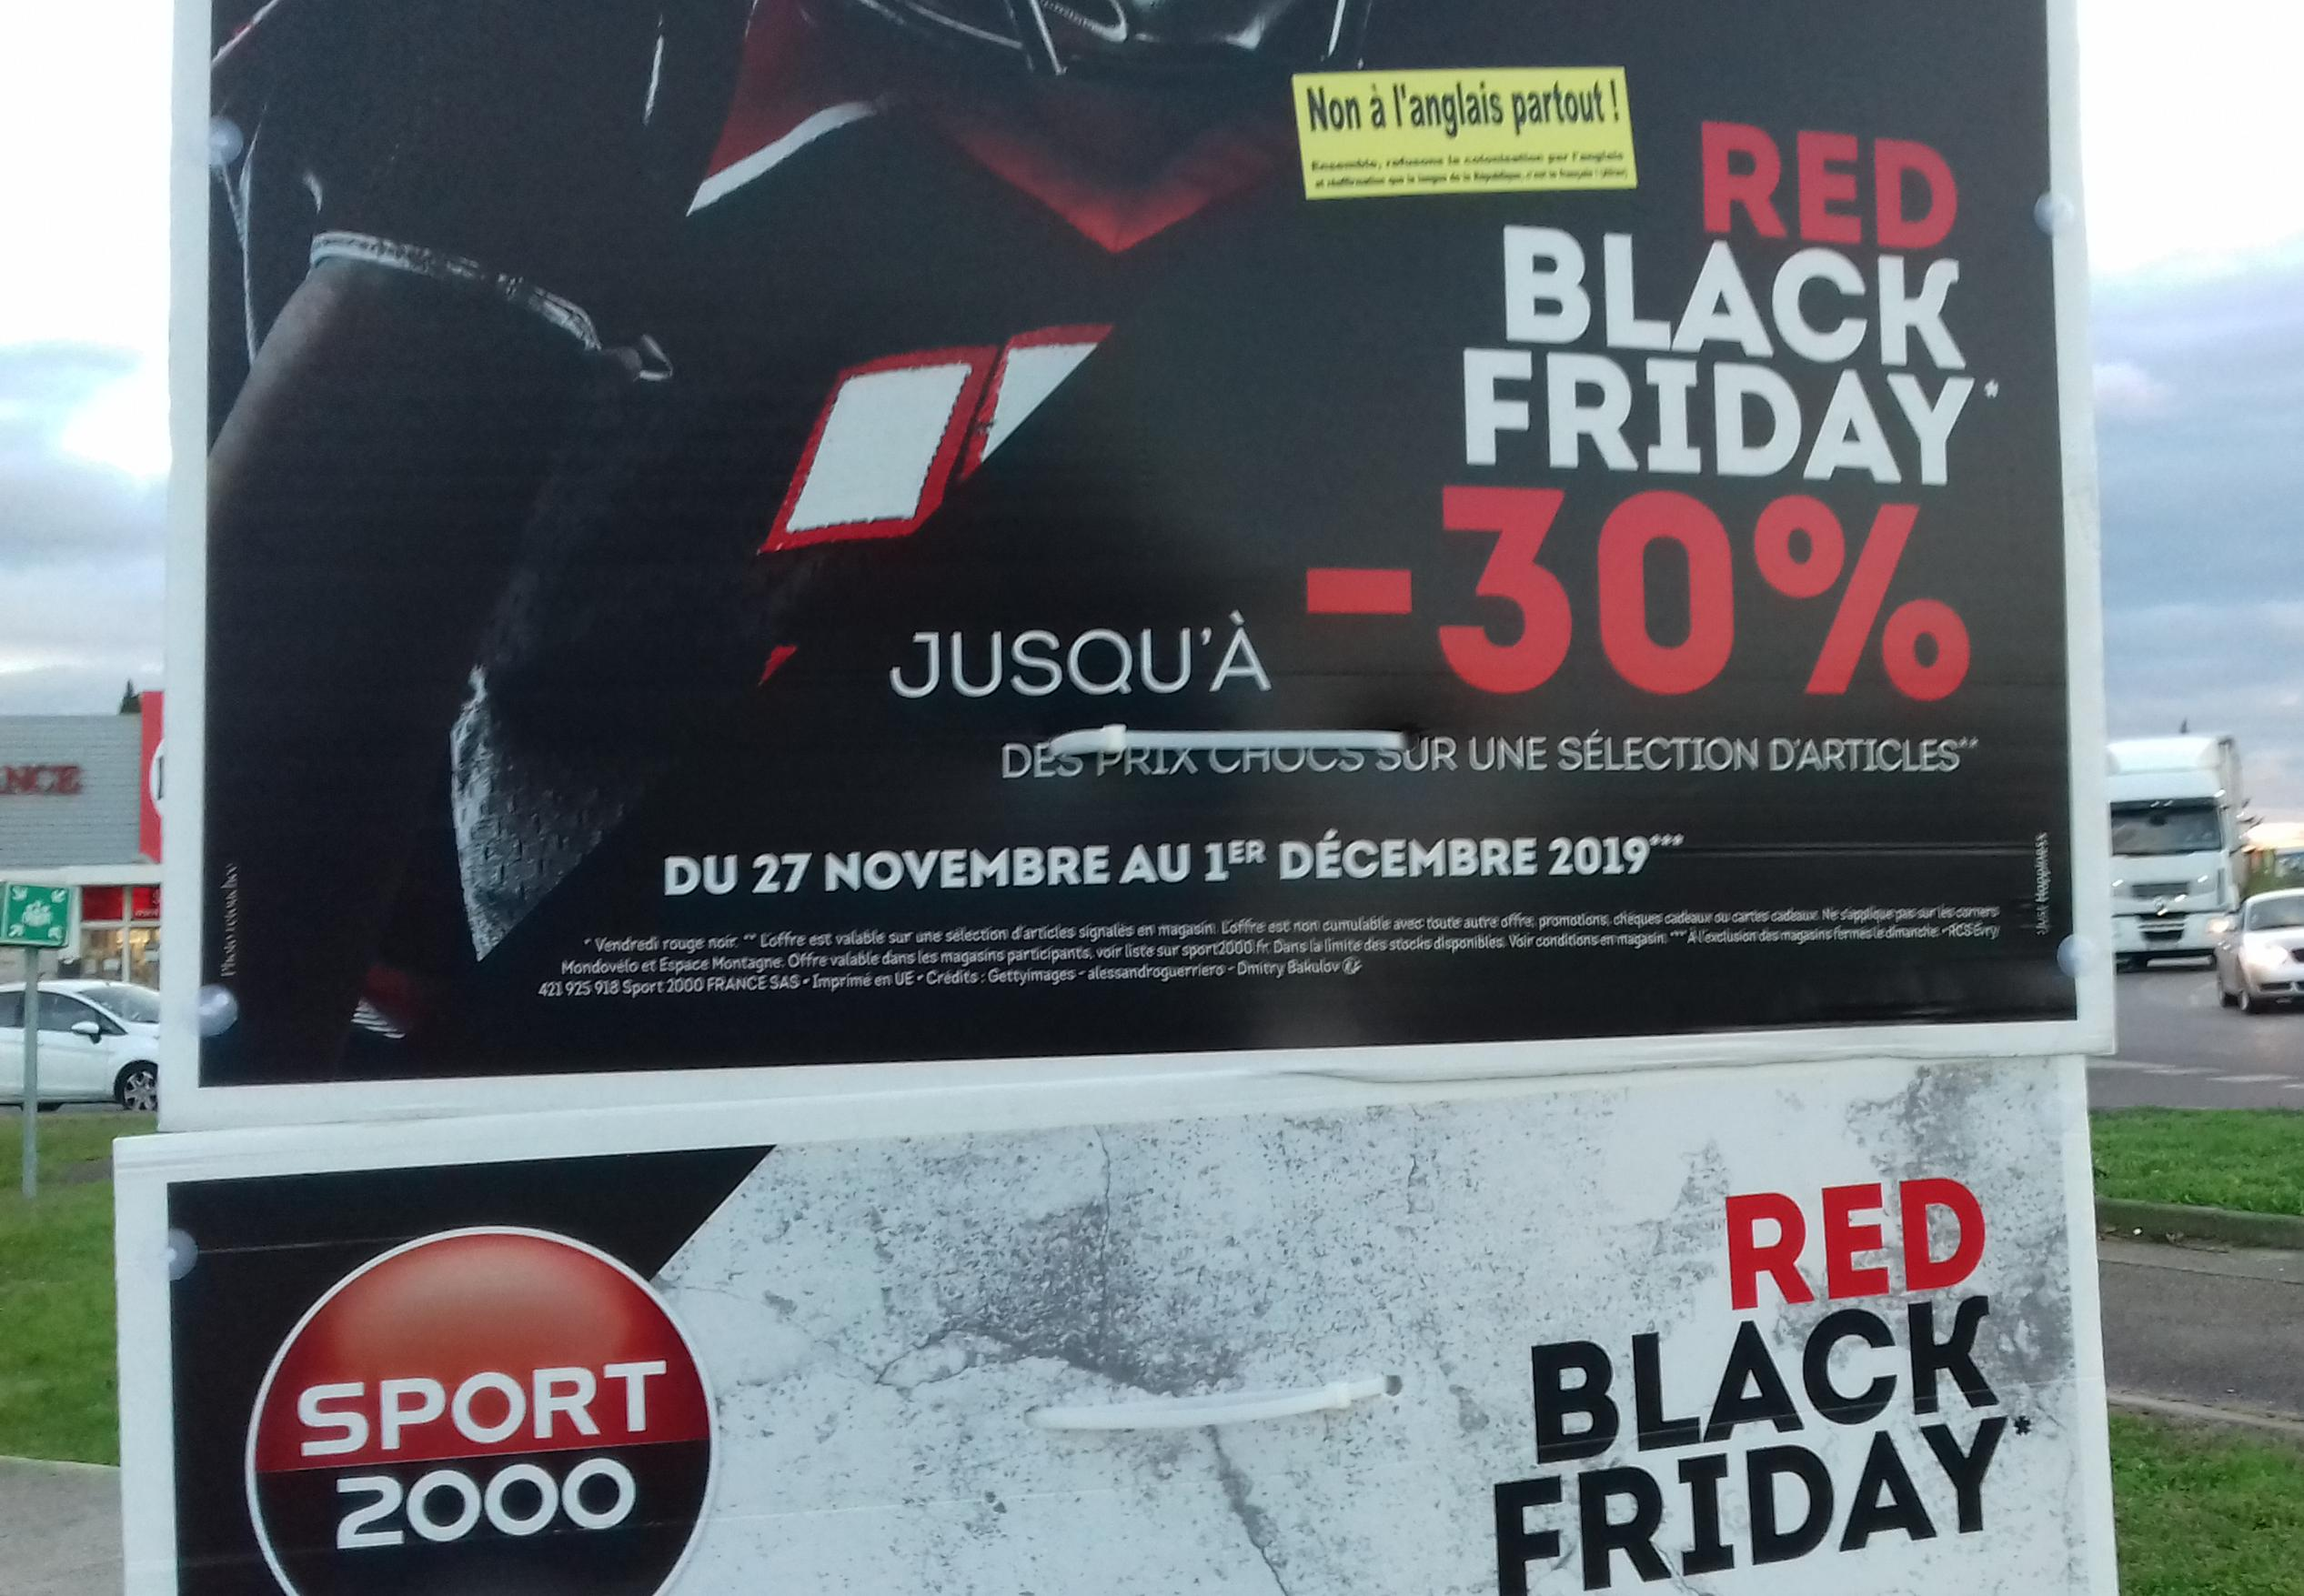 Sport 2000 et le Red Black Friday